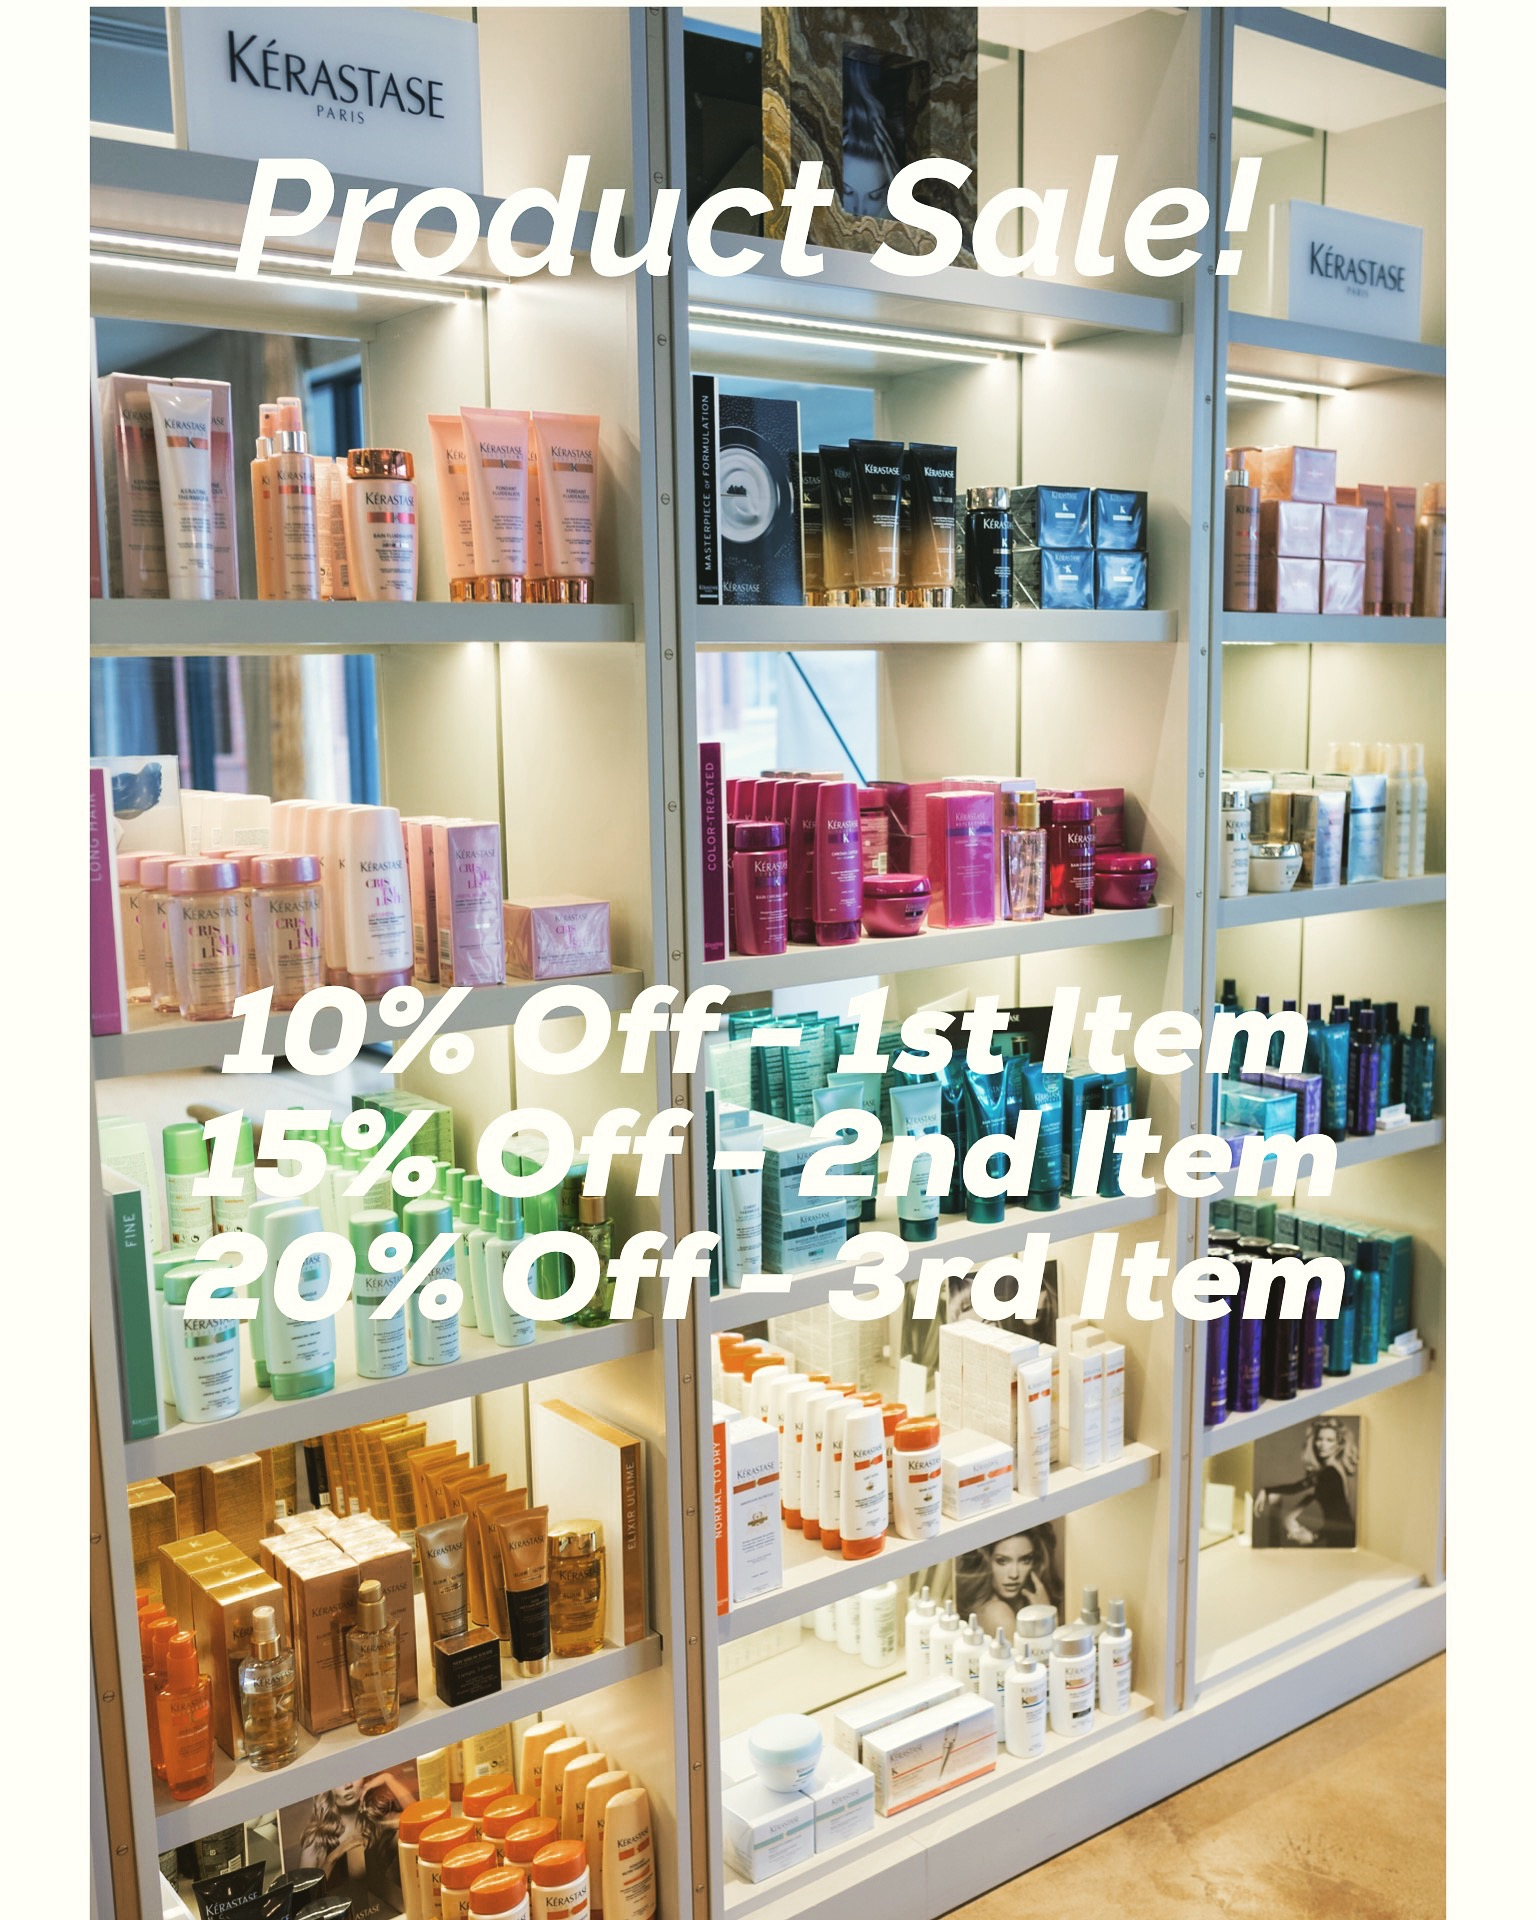 Keri_Gold_Salon_Product_Sale